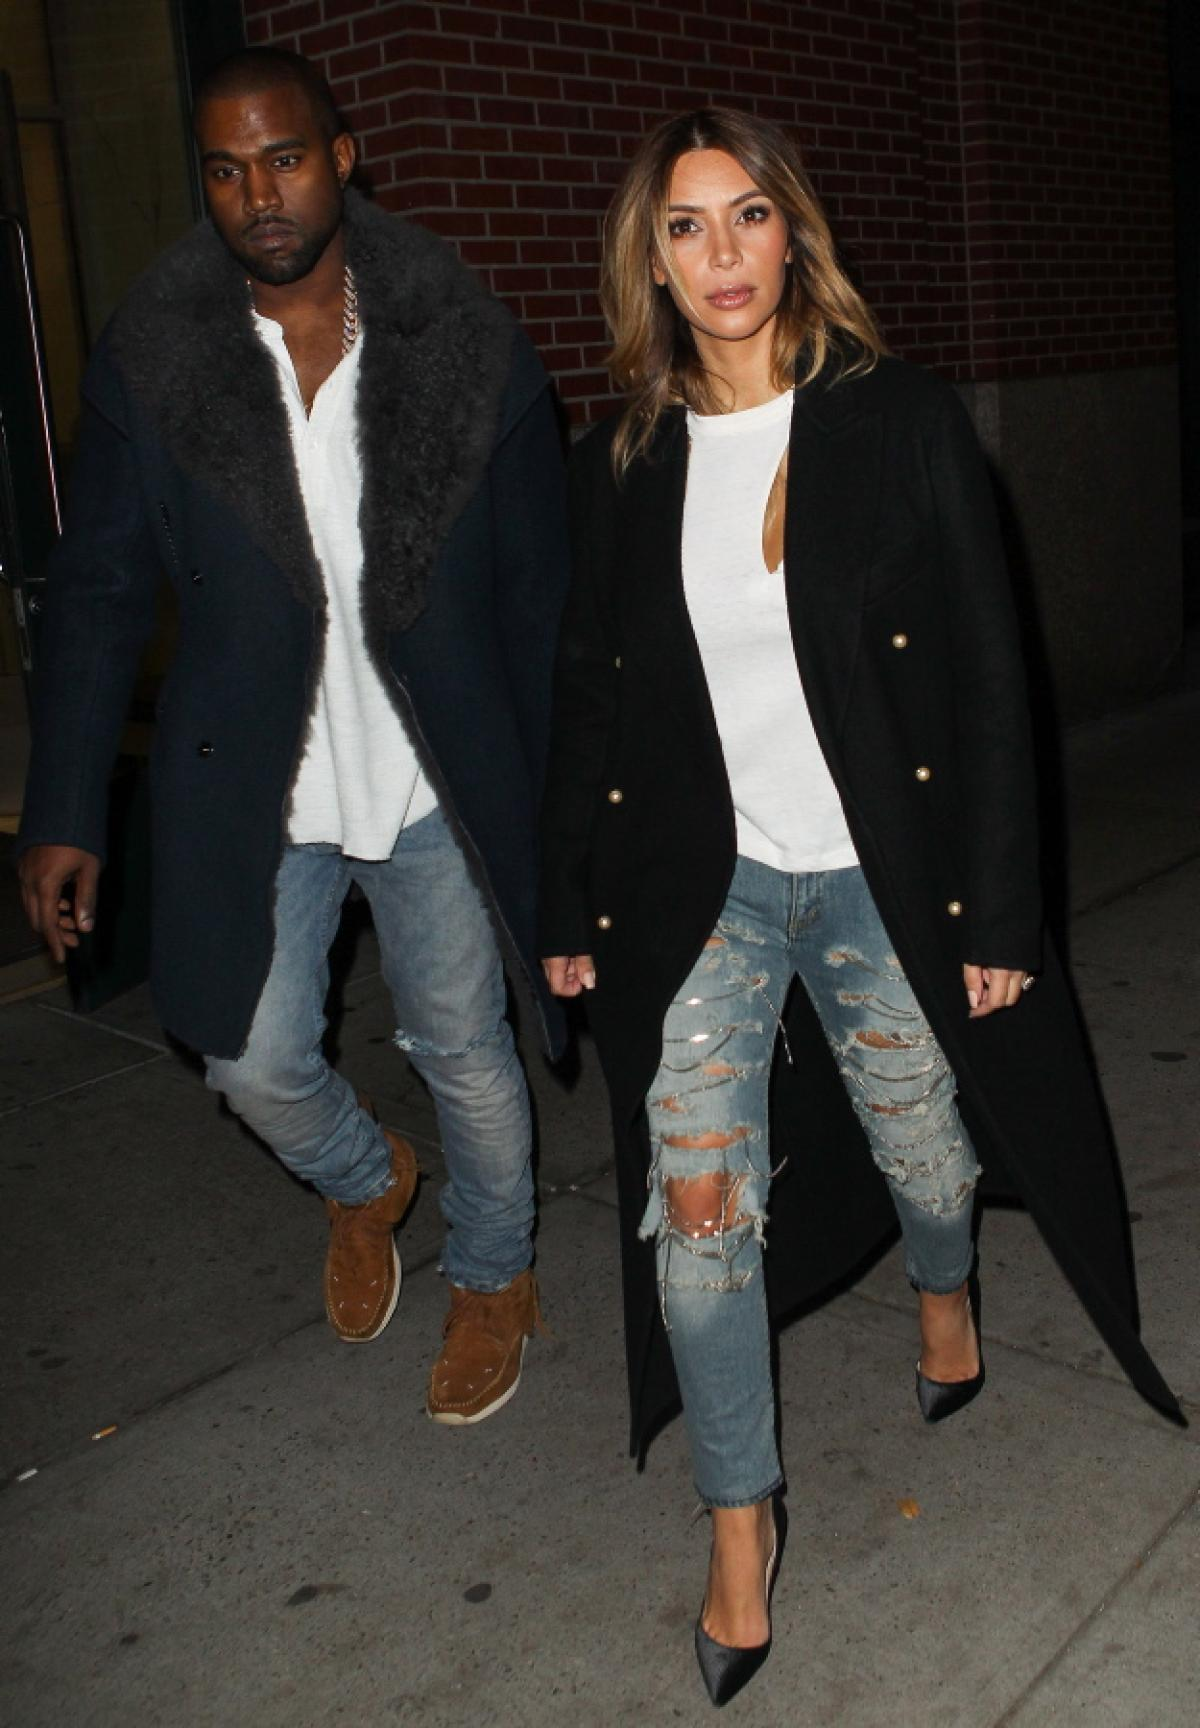 kanye-west-kim-kardashian-new-york-city